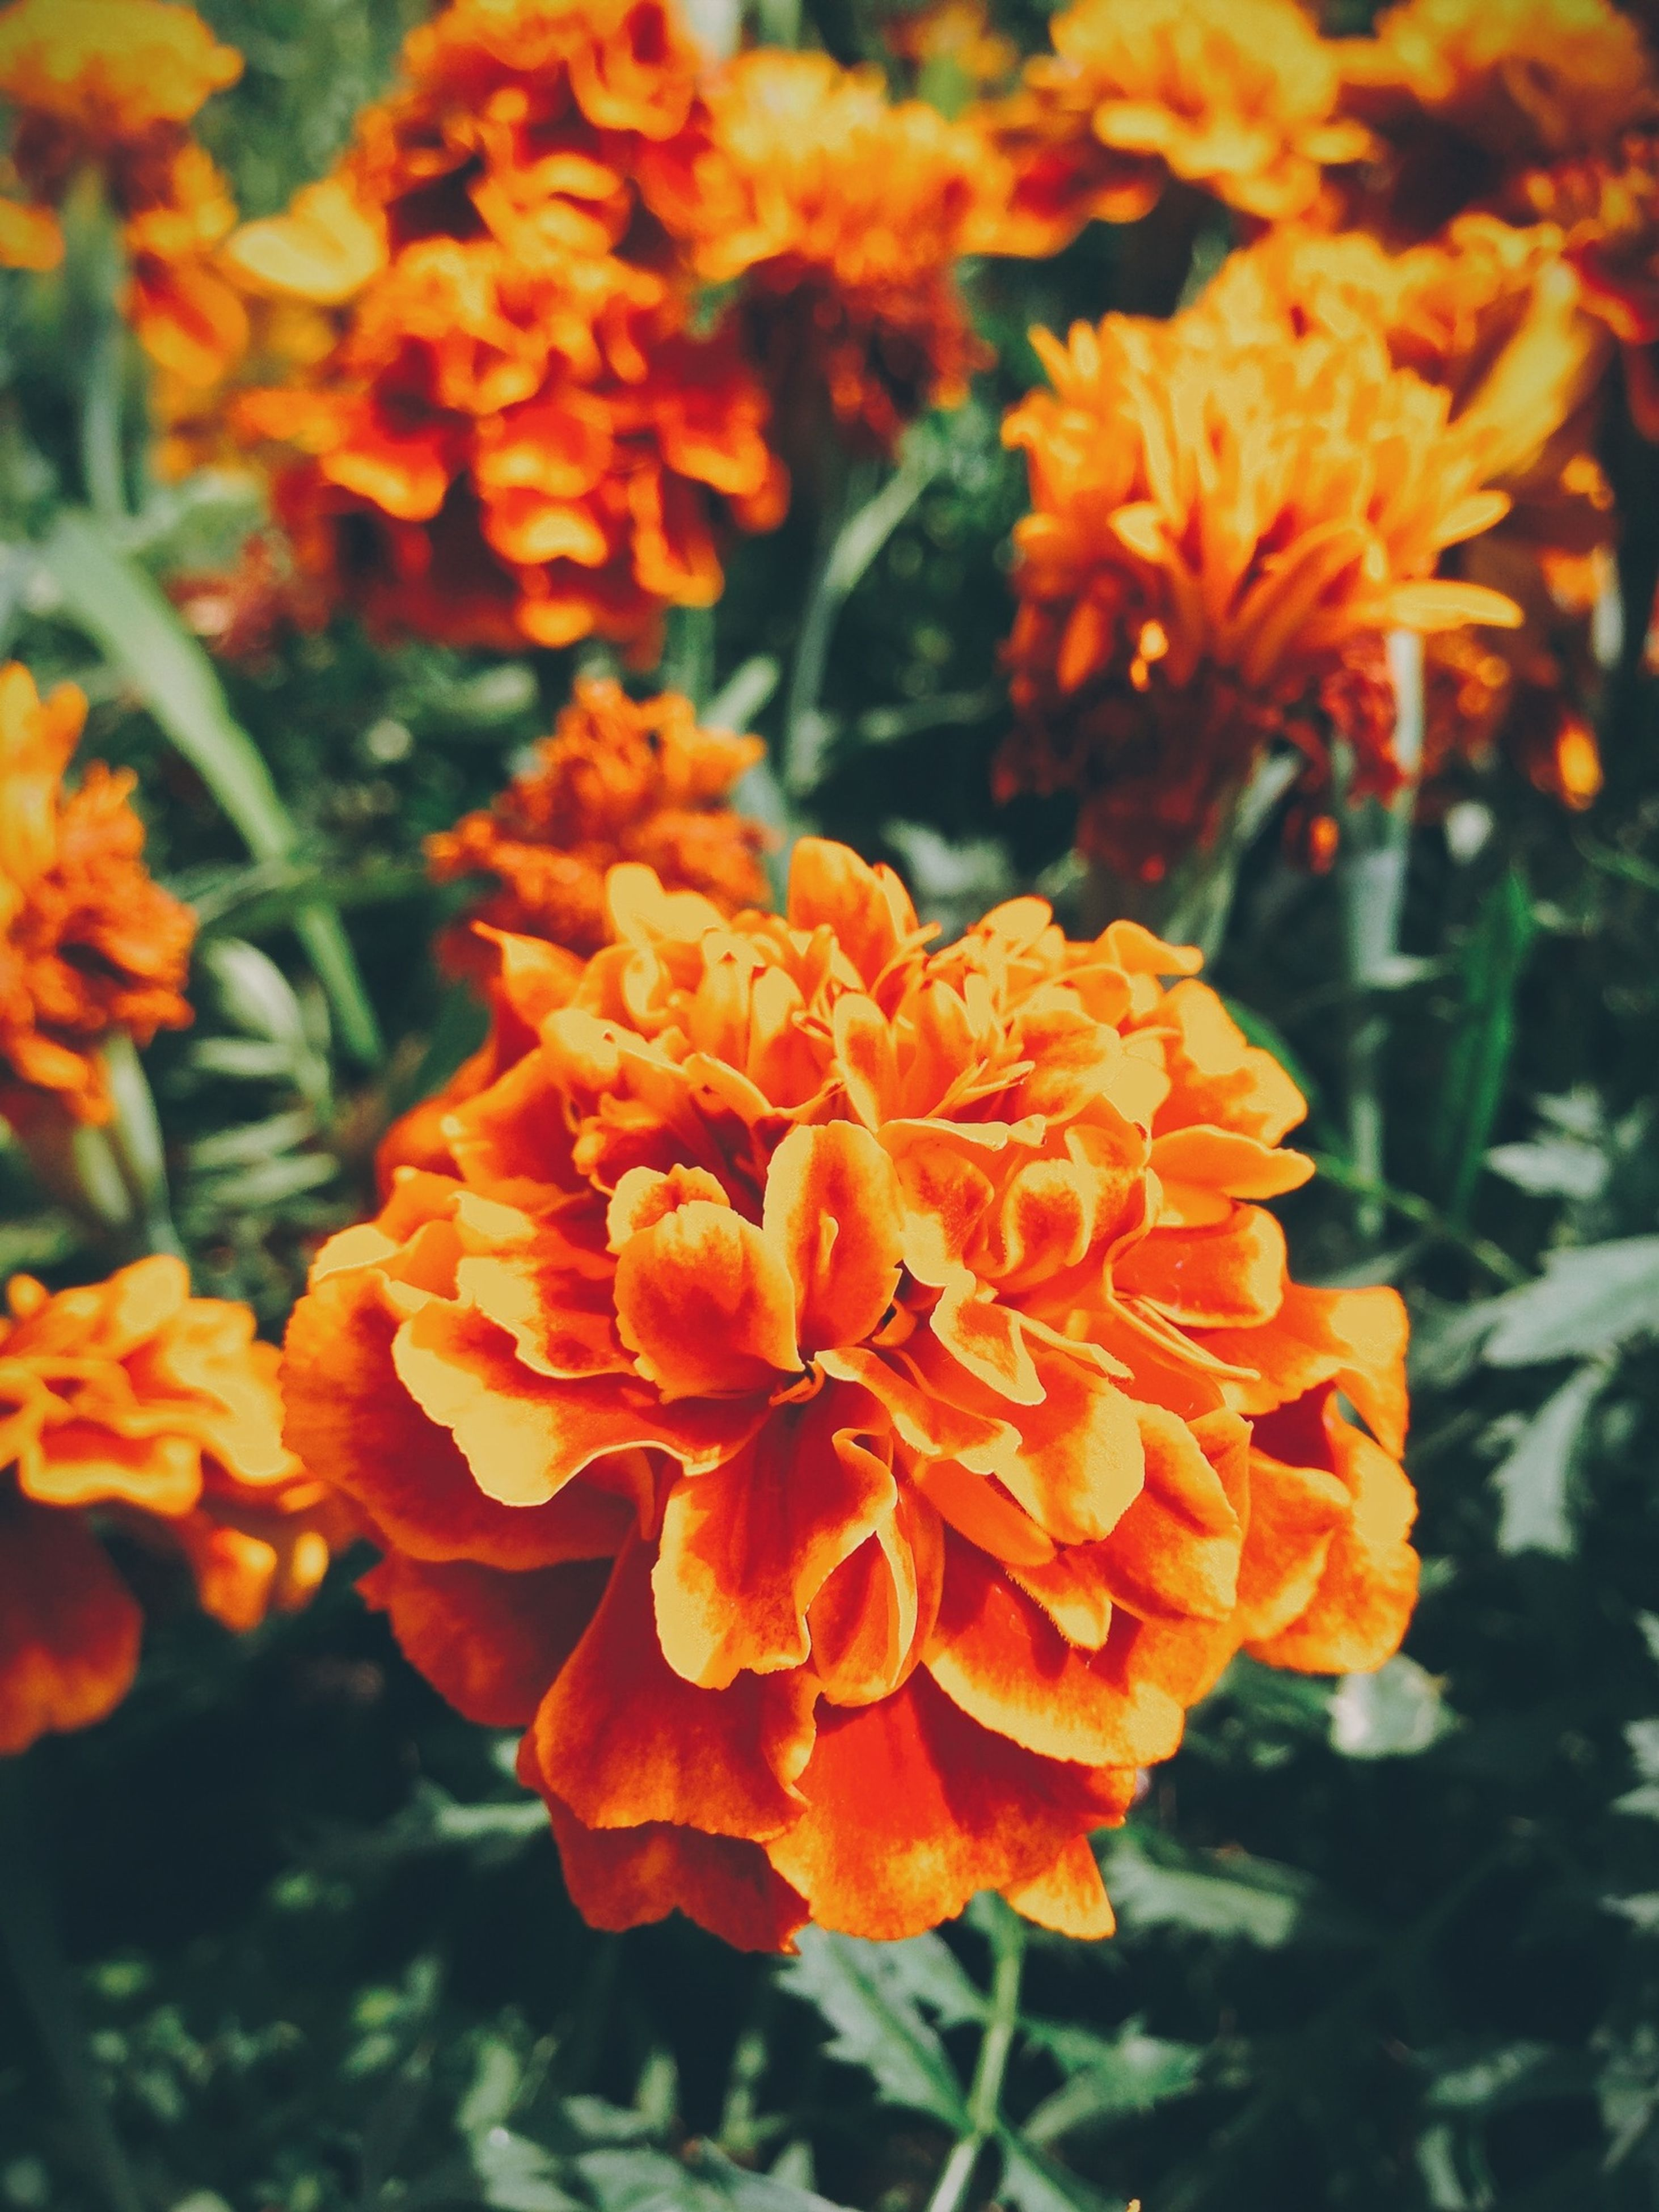 flower, petal, freshness, orange color, fragility, flower head, growth, beauty in nature, focus on foreground, blooming, close-up, nature, plant, in bloom, park - man made space, yellow, outdoors, red, no people, botany